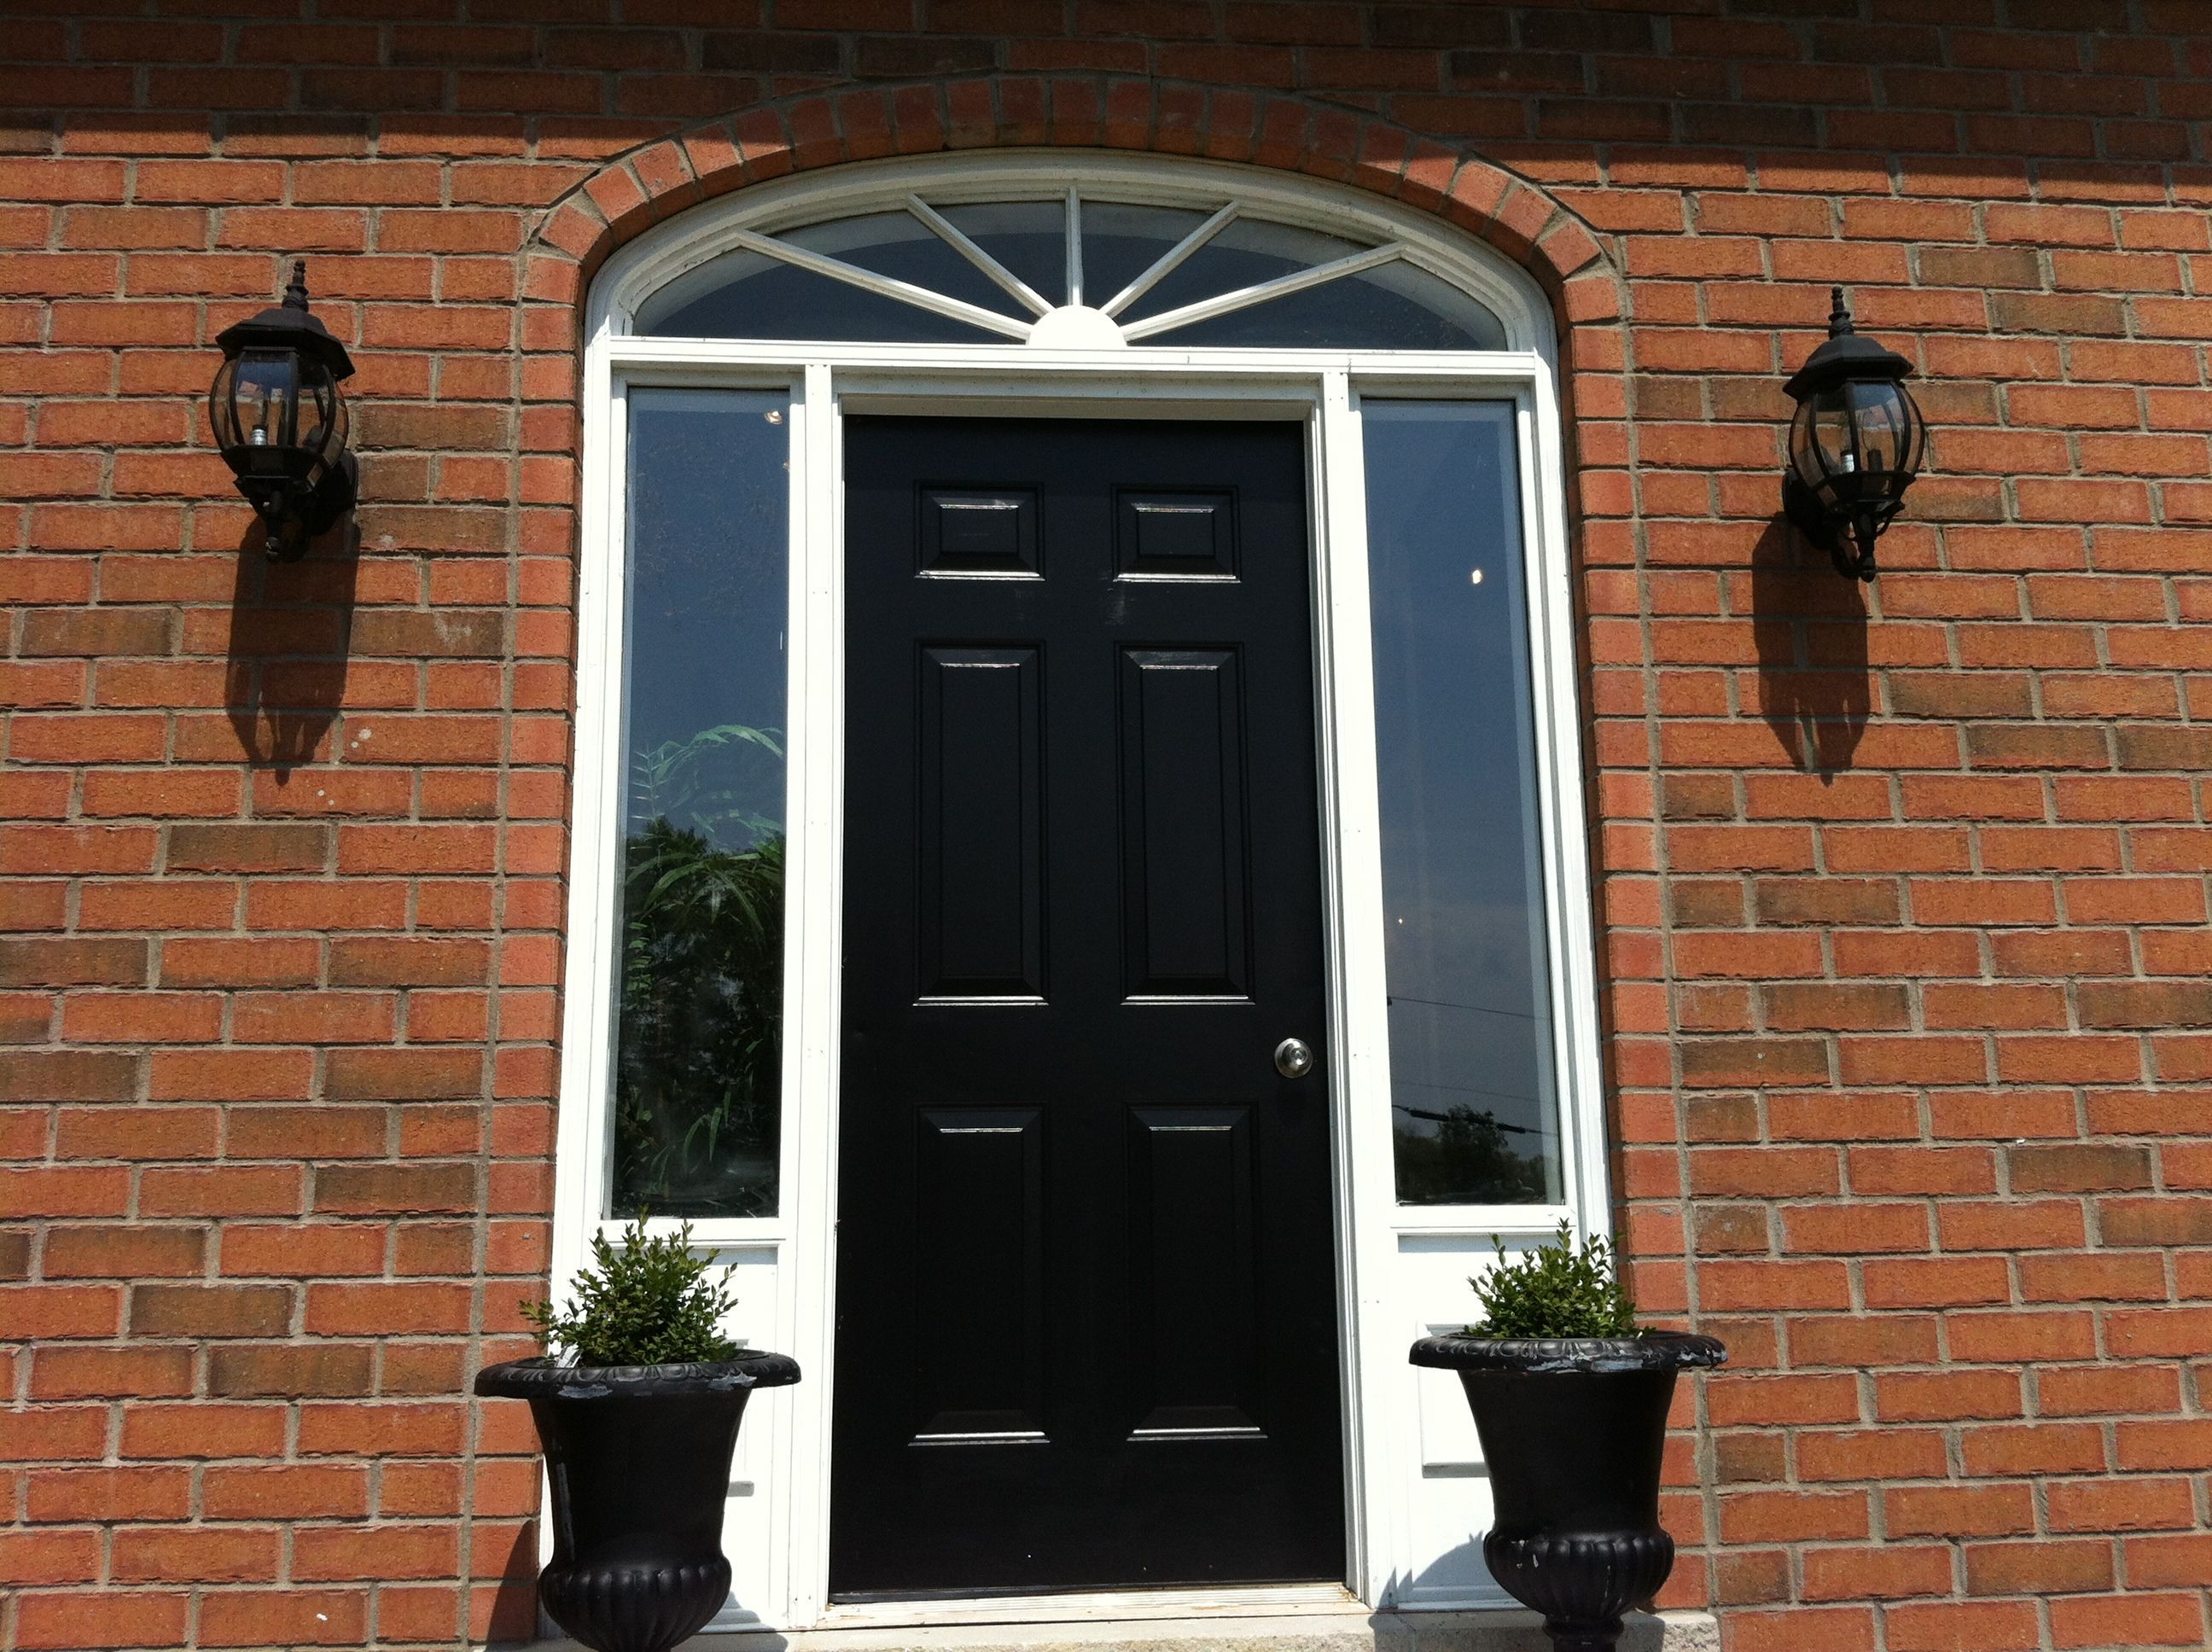 1936 #925539  Doors Entrance Doors Wooden Doors Modern Front Door Black Front Doors wallpaper Black Front Doors With Glass 43452592